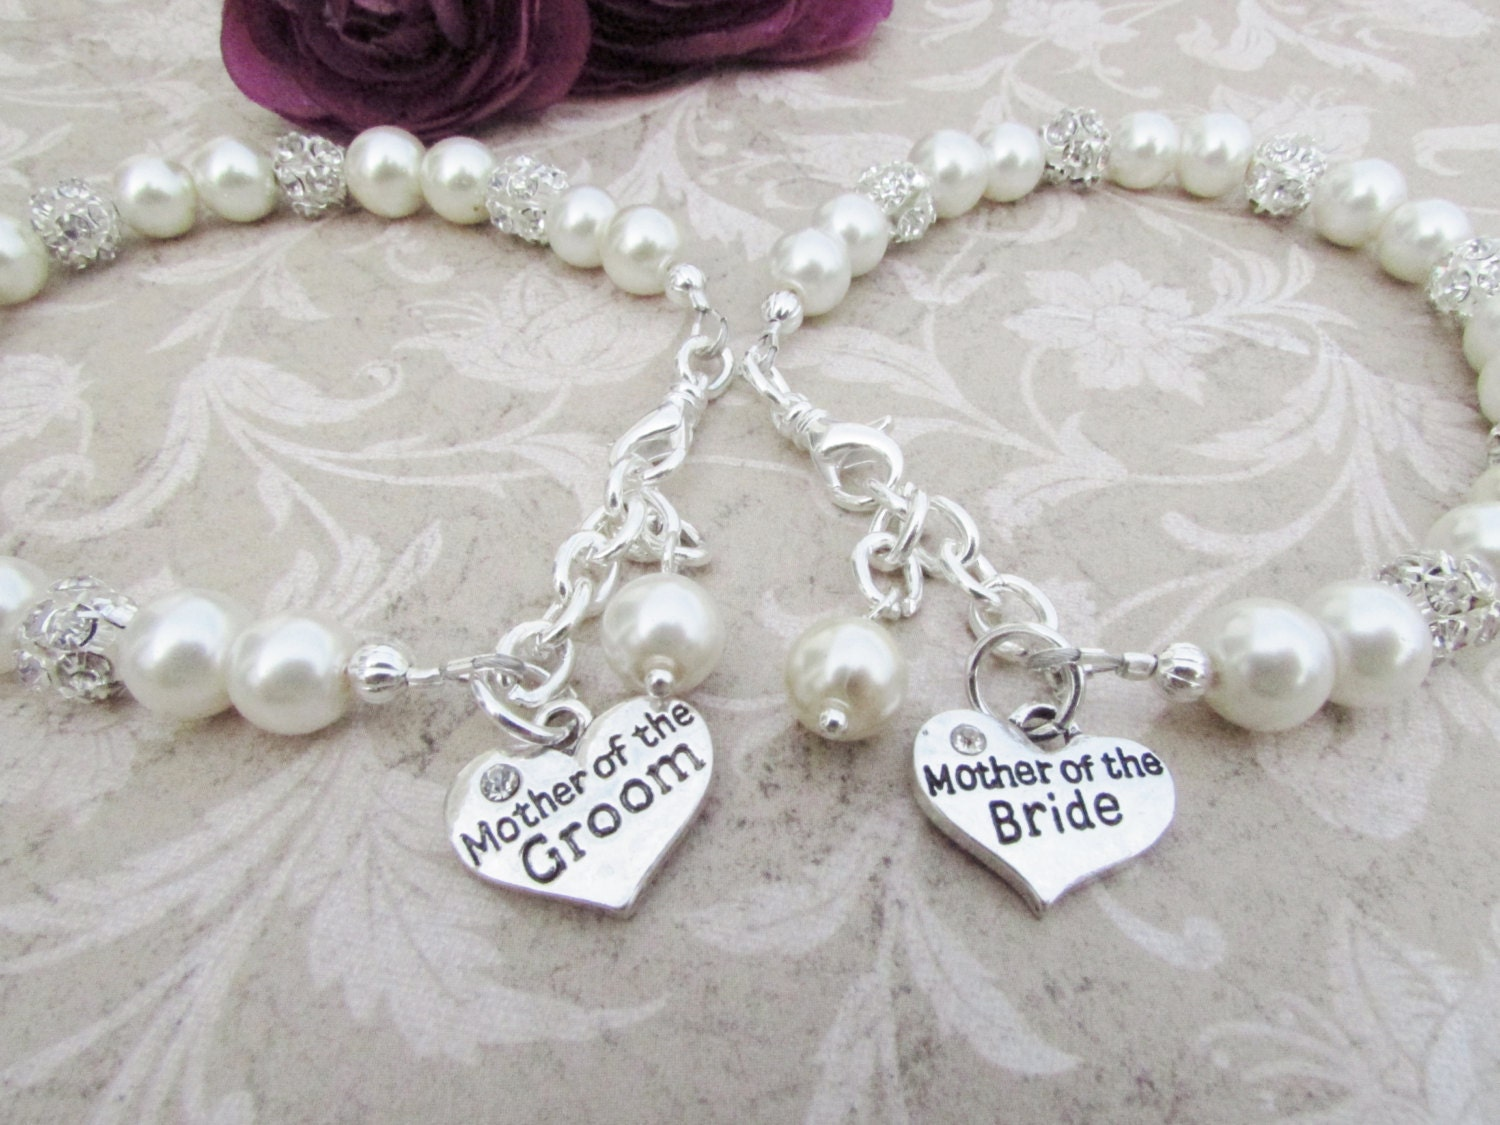 Gifts For Bride On Wedding Day From Bridesmaid: Mother Of The Bride Bracelet Mother Of The Groom Mother Of The